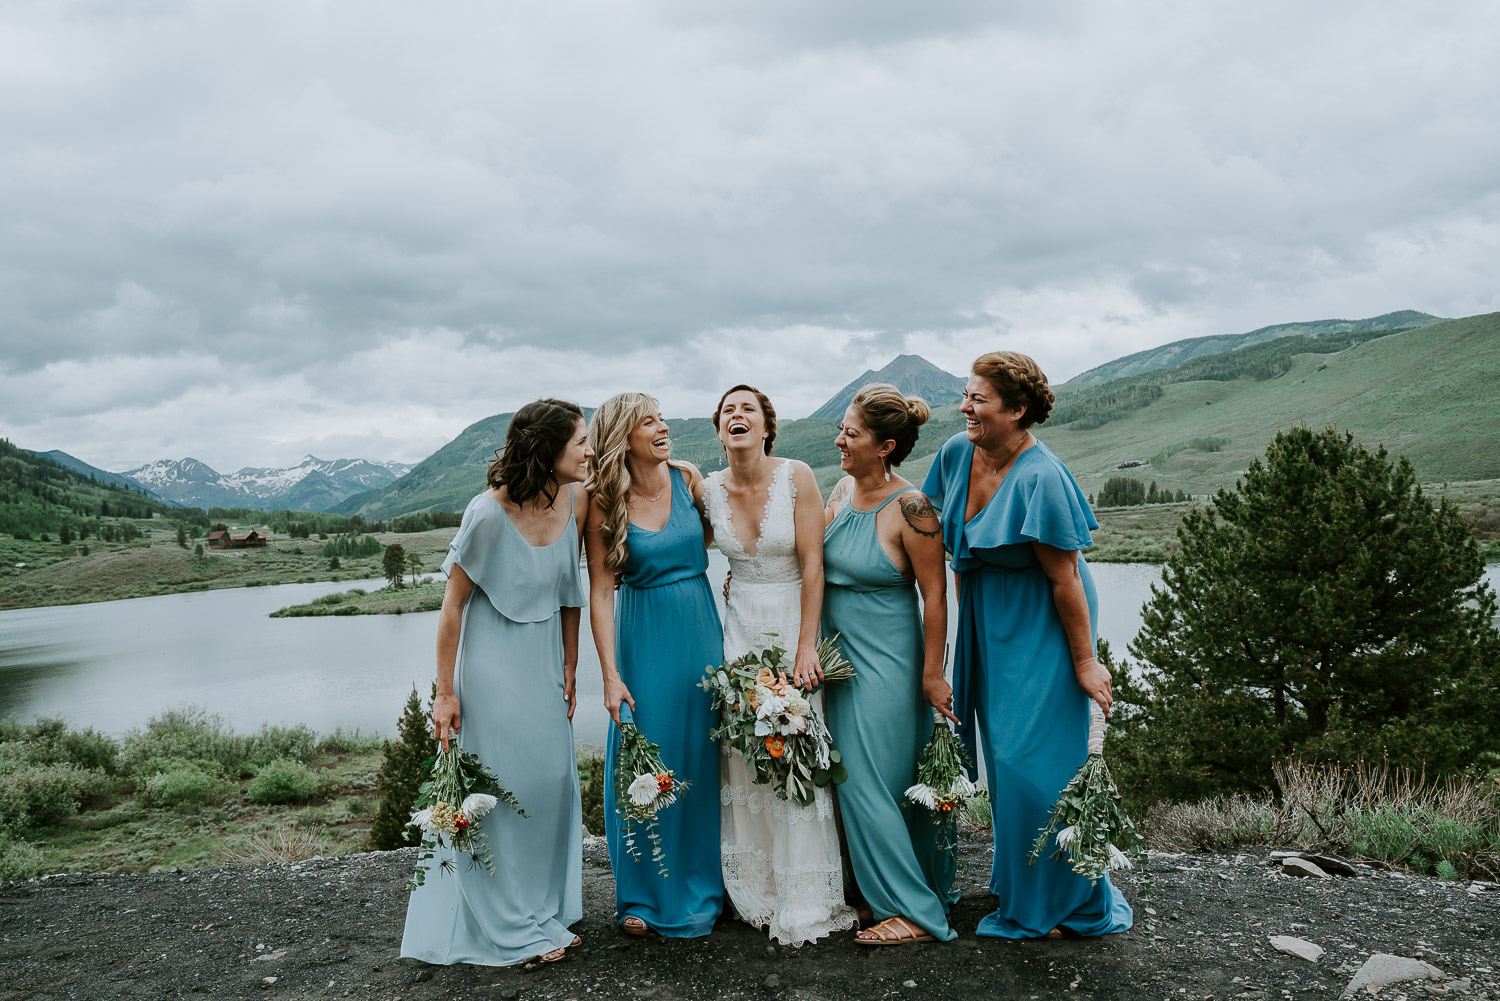 Colorado Wedding Photography, Intimate Wedding, Colorado elopement photography, crested butte wedding, bridesmaids